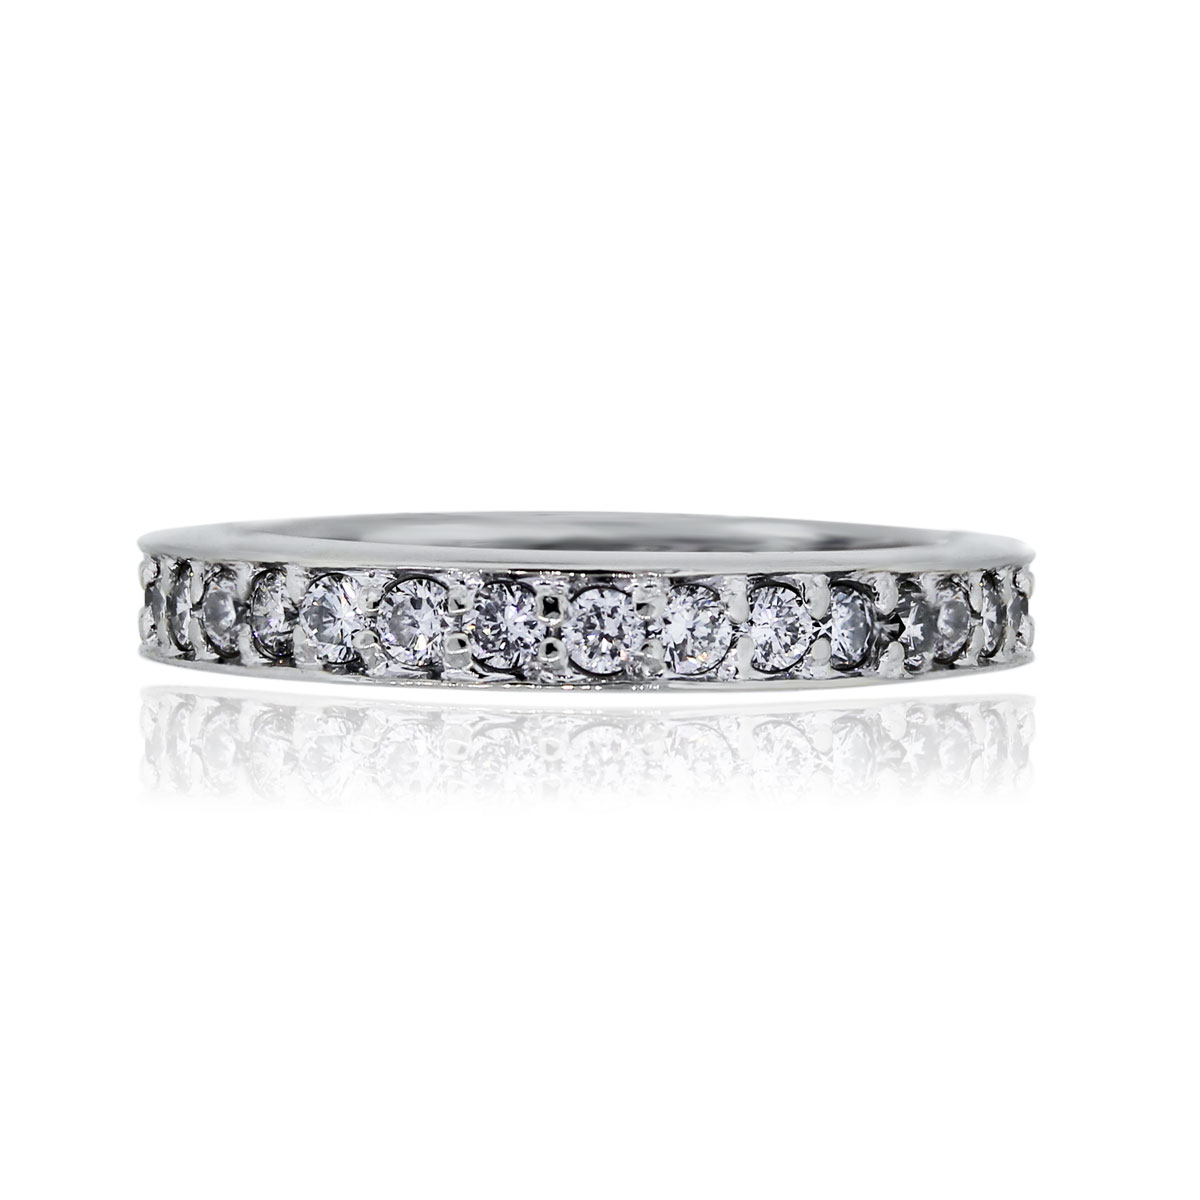 You are viewing this 14k White Gold Round Brilliant 3mm Diamond Wedding Band Ring!